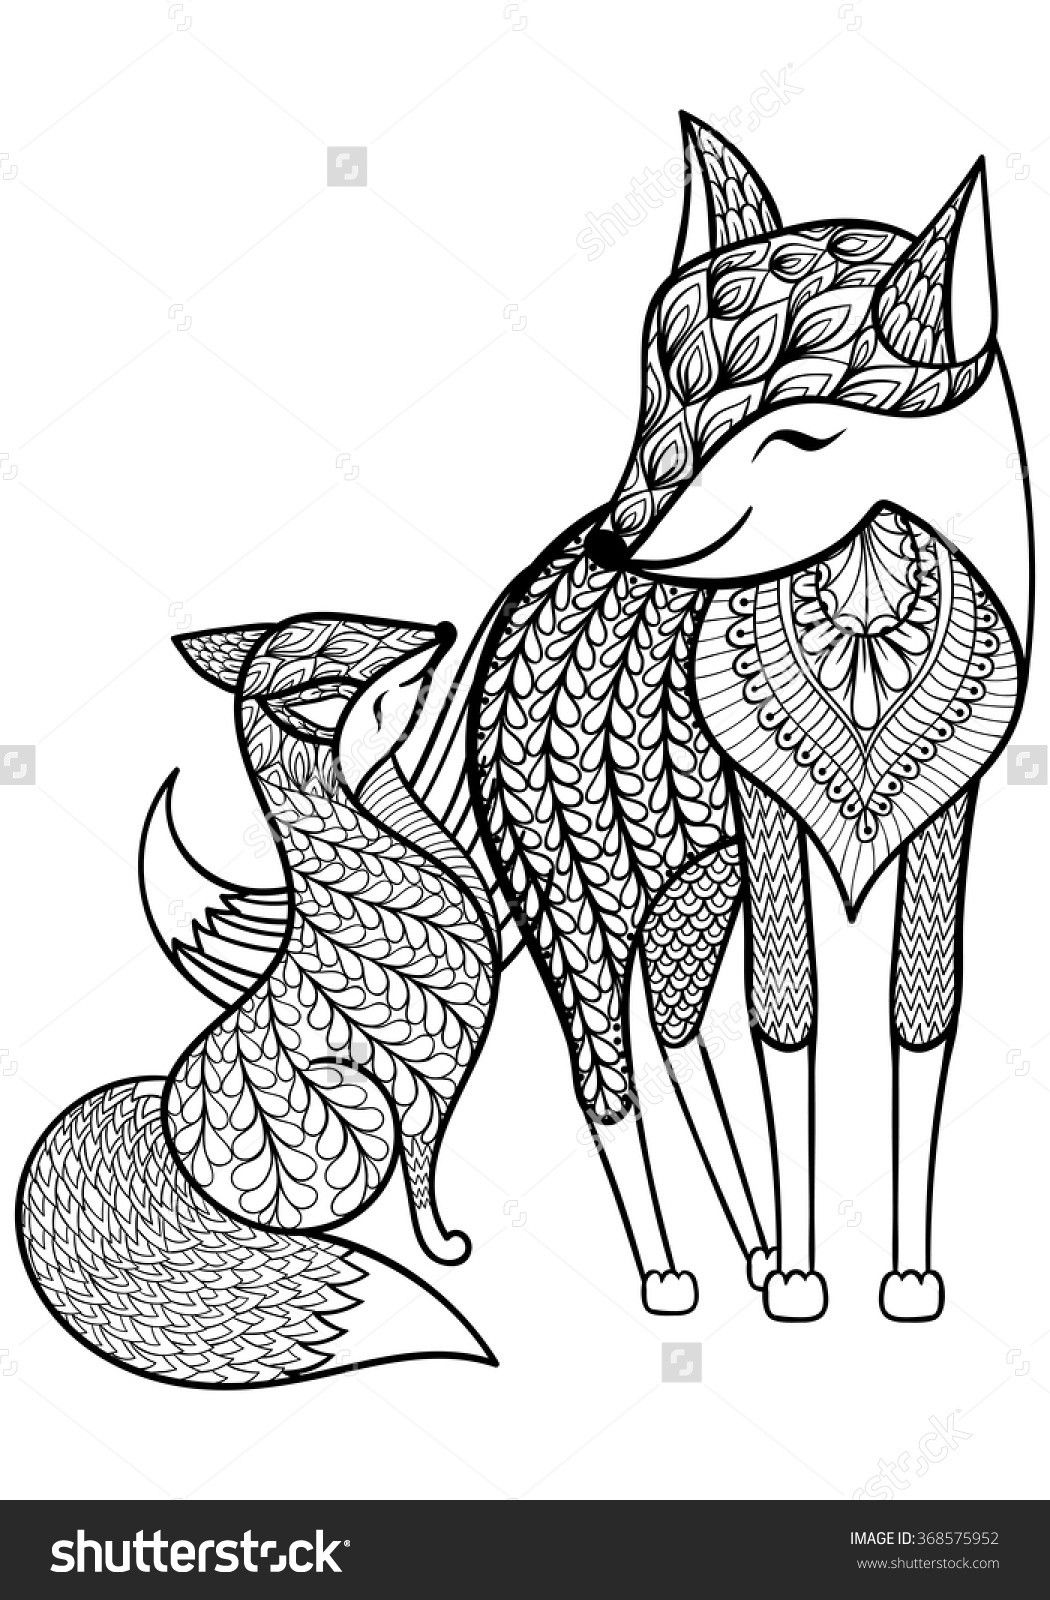 Mesmerizing Color In Socks 21 Coloring Pages Fox Images